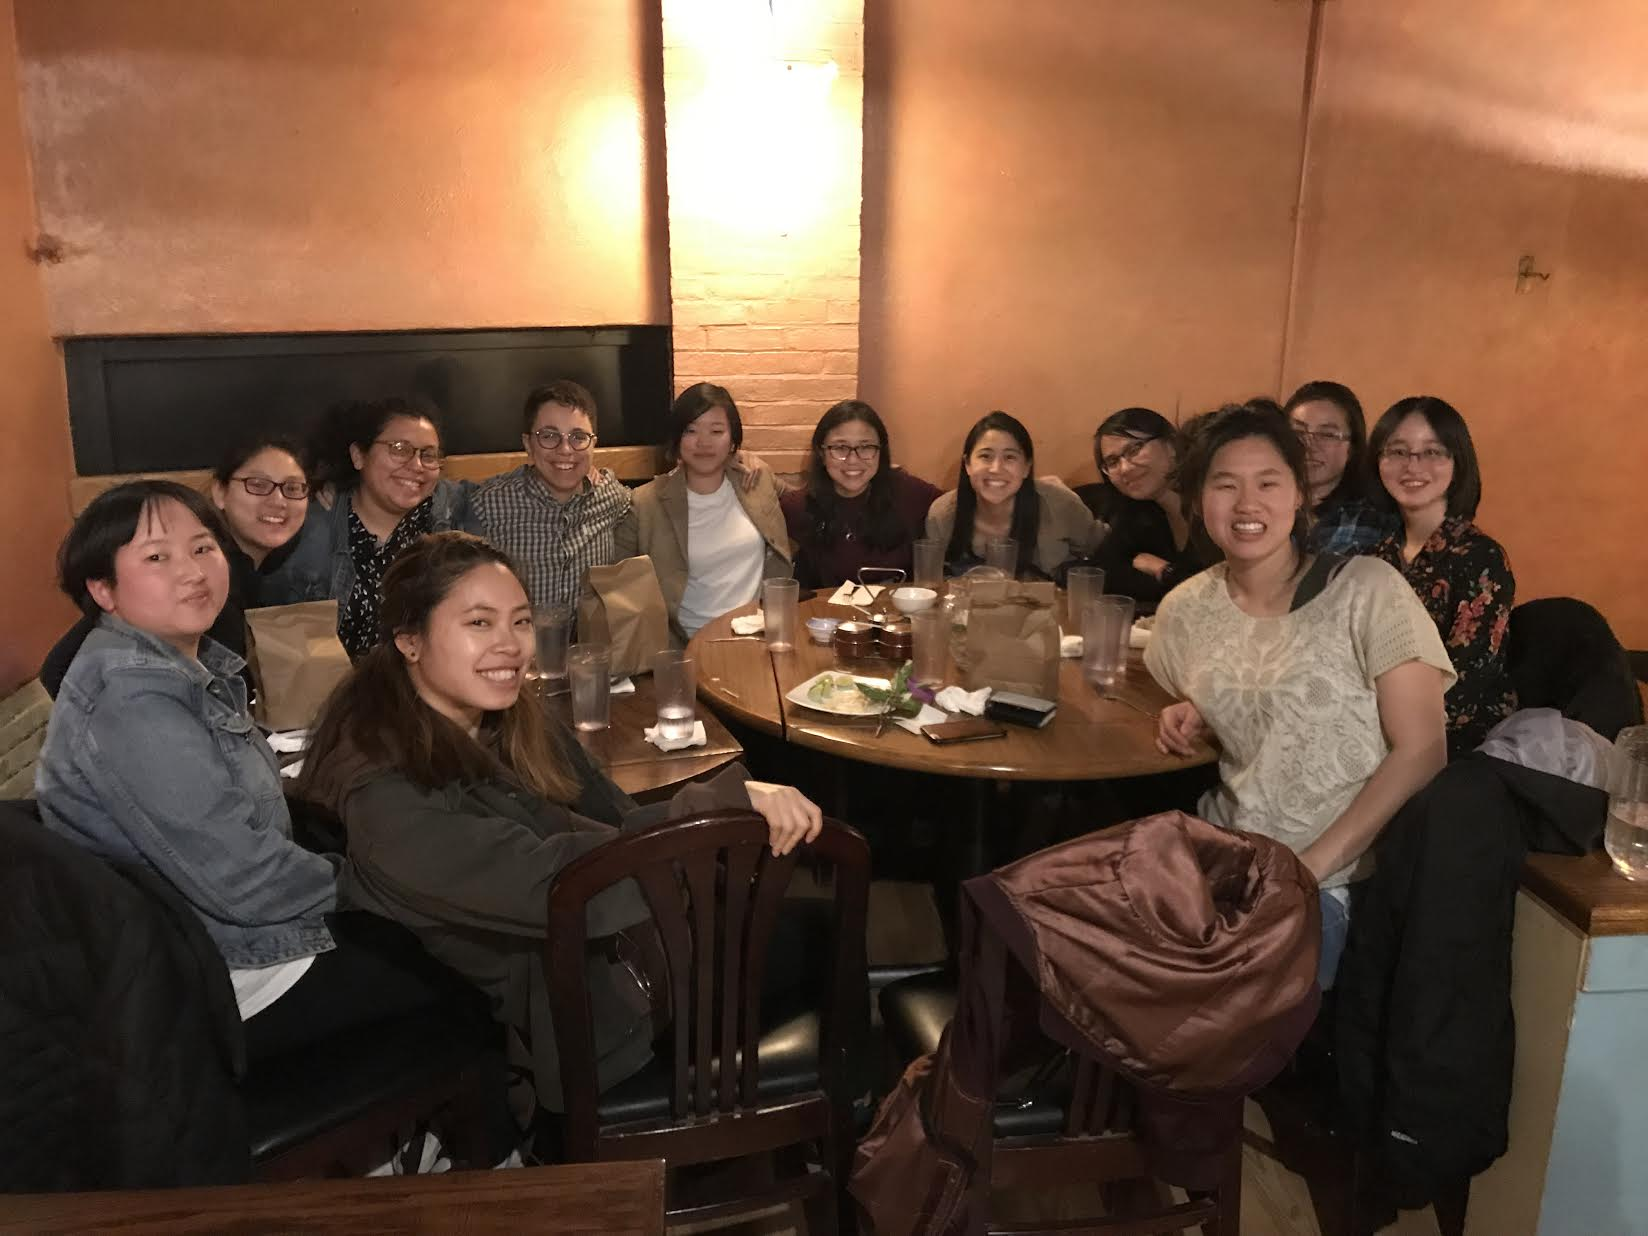 CCI Boston plus some additional adoptee friends meet up for dinner after the Let's Talk! conference, March 2019.